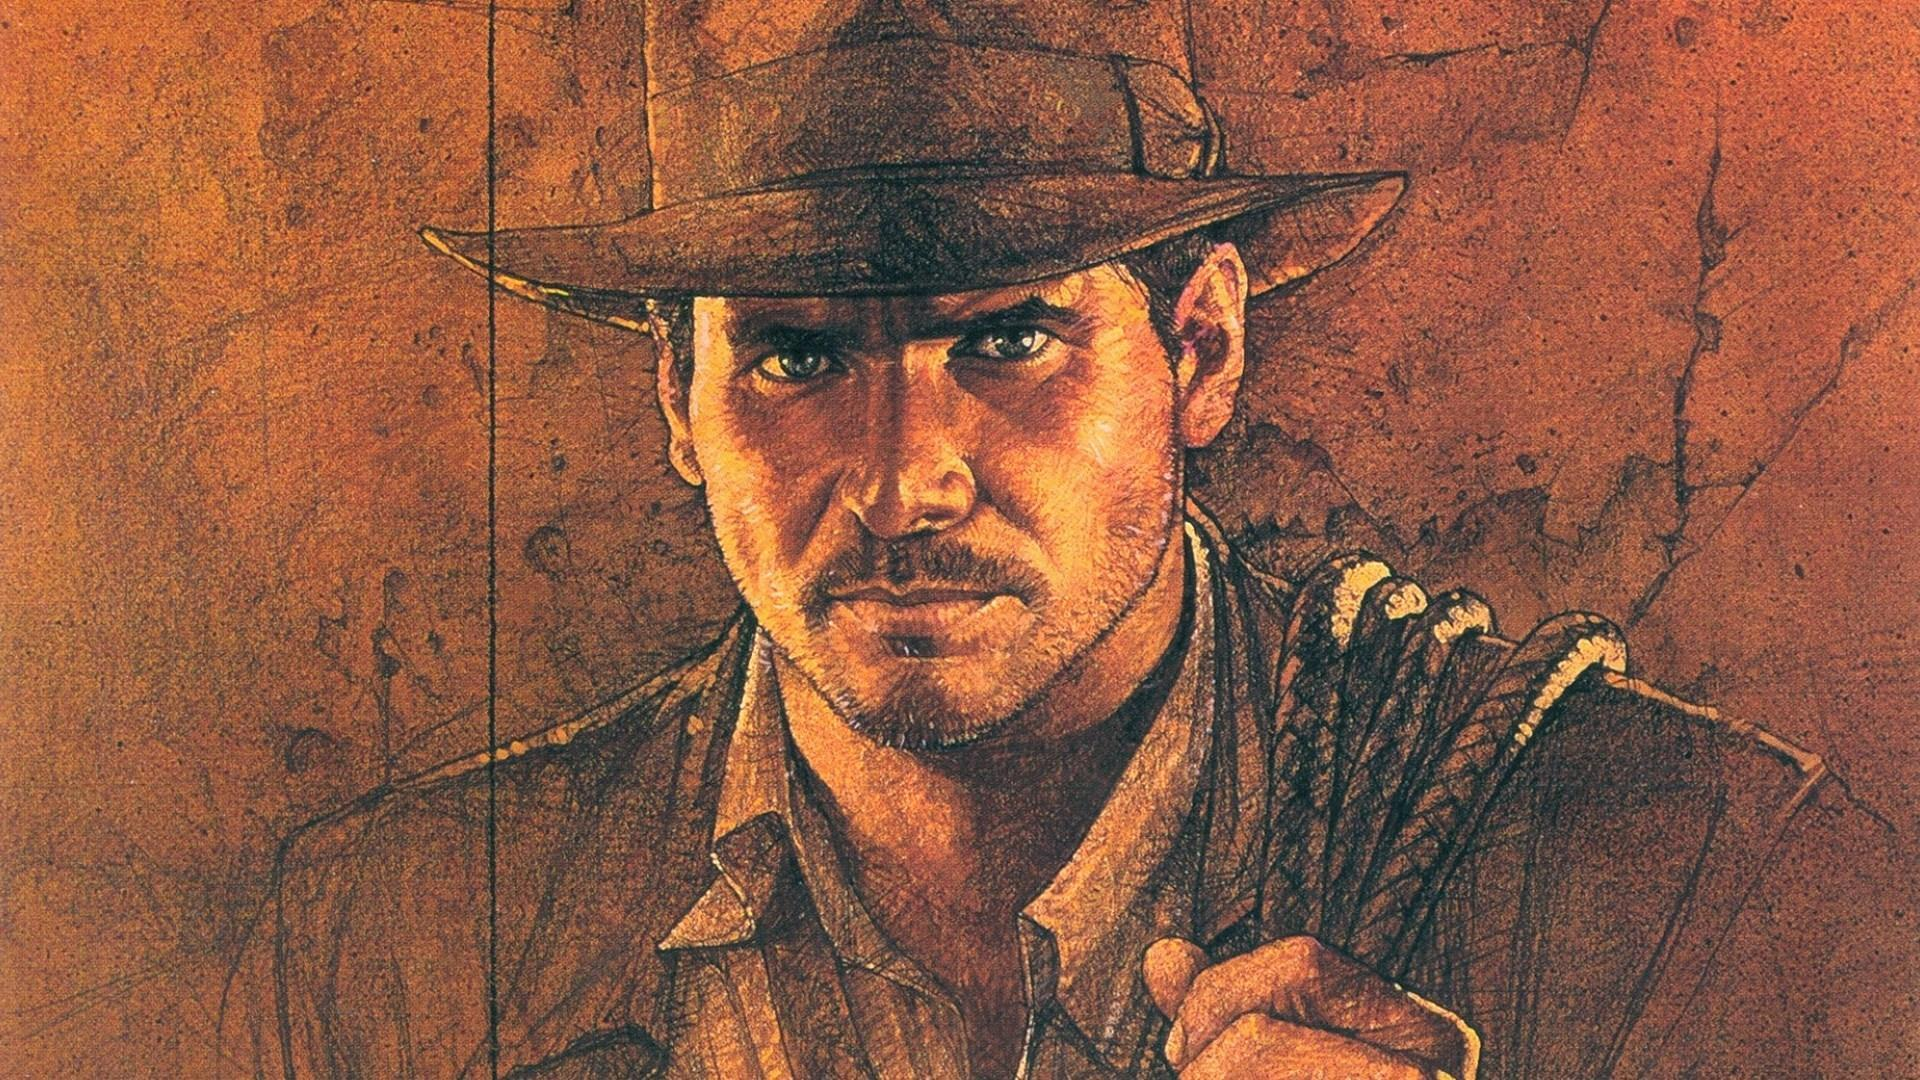 indiana jones adventure wallpaper - photo #2